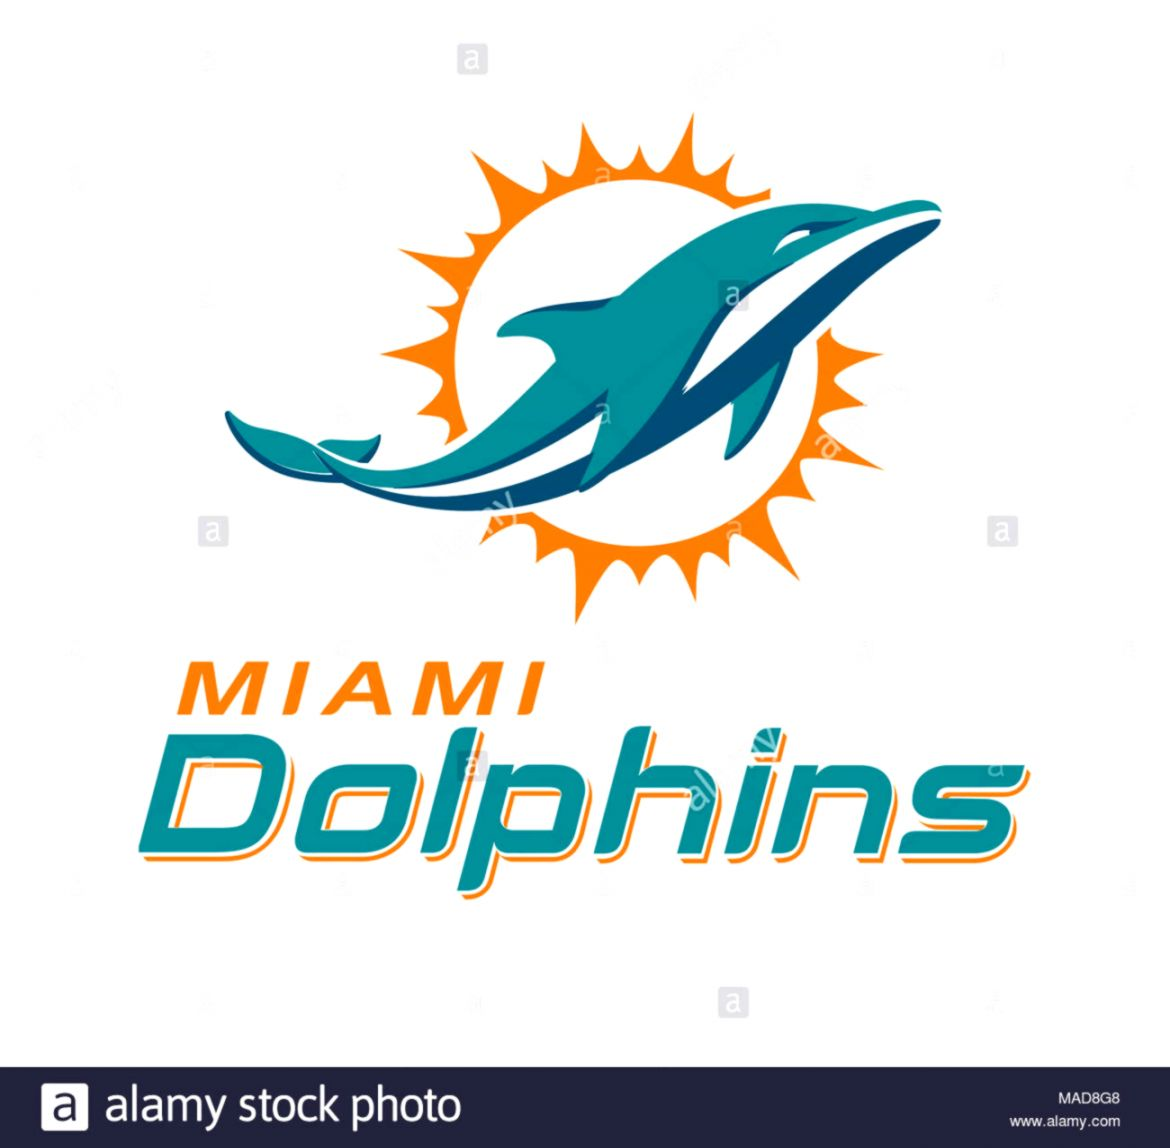 59054160 Miami Dolphins | Wallpapers Comp